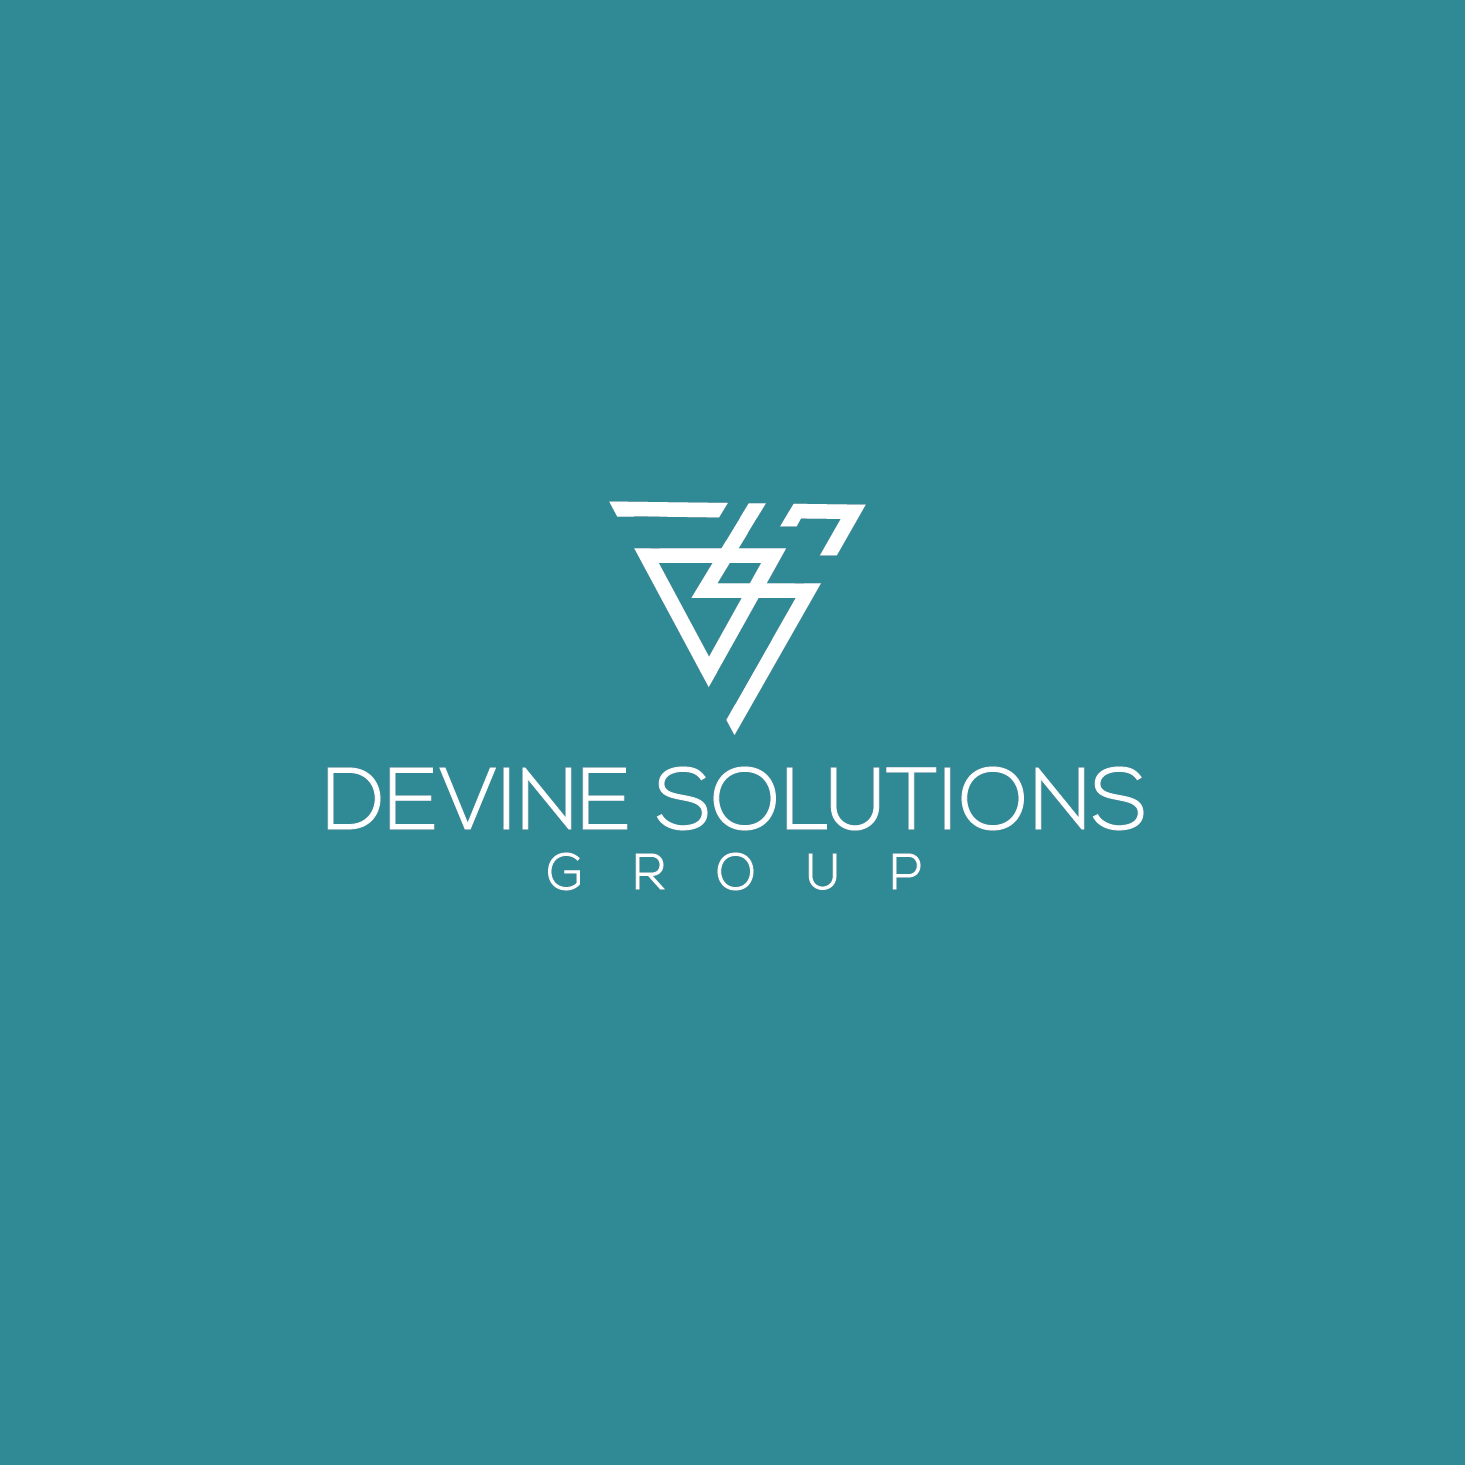 Devine Solutions Group logo